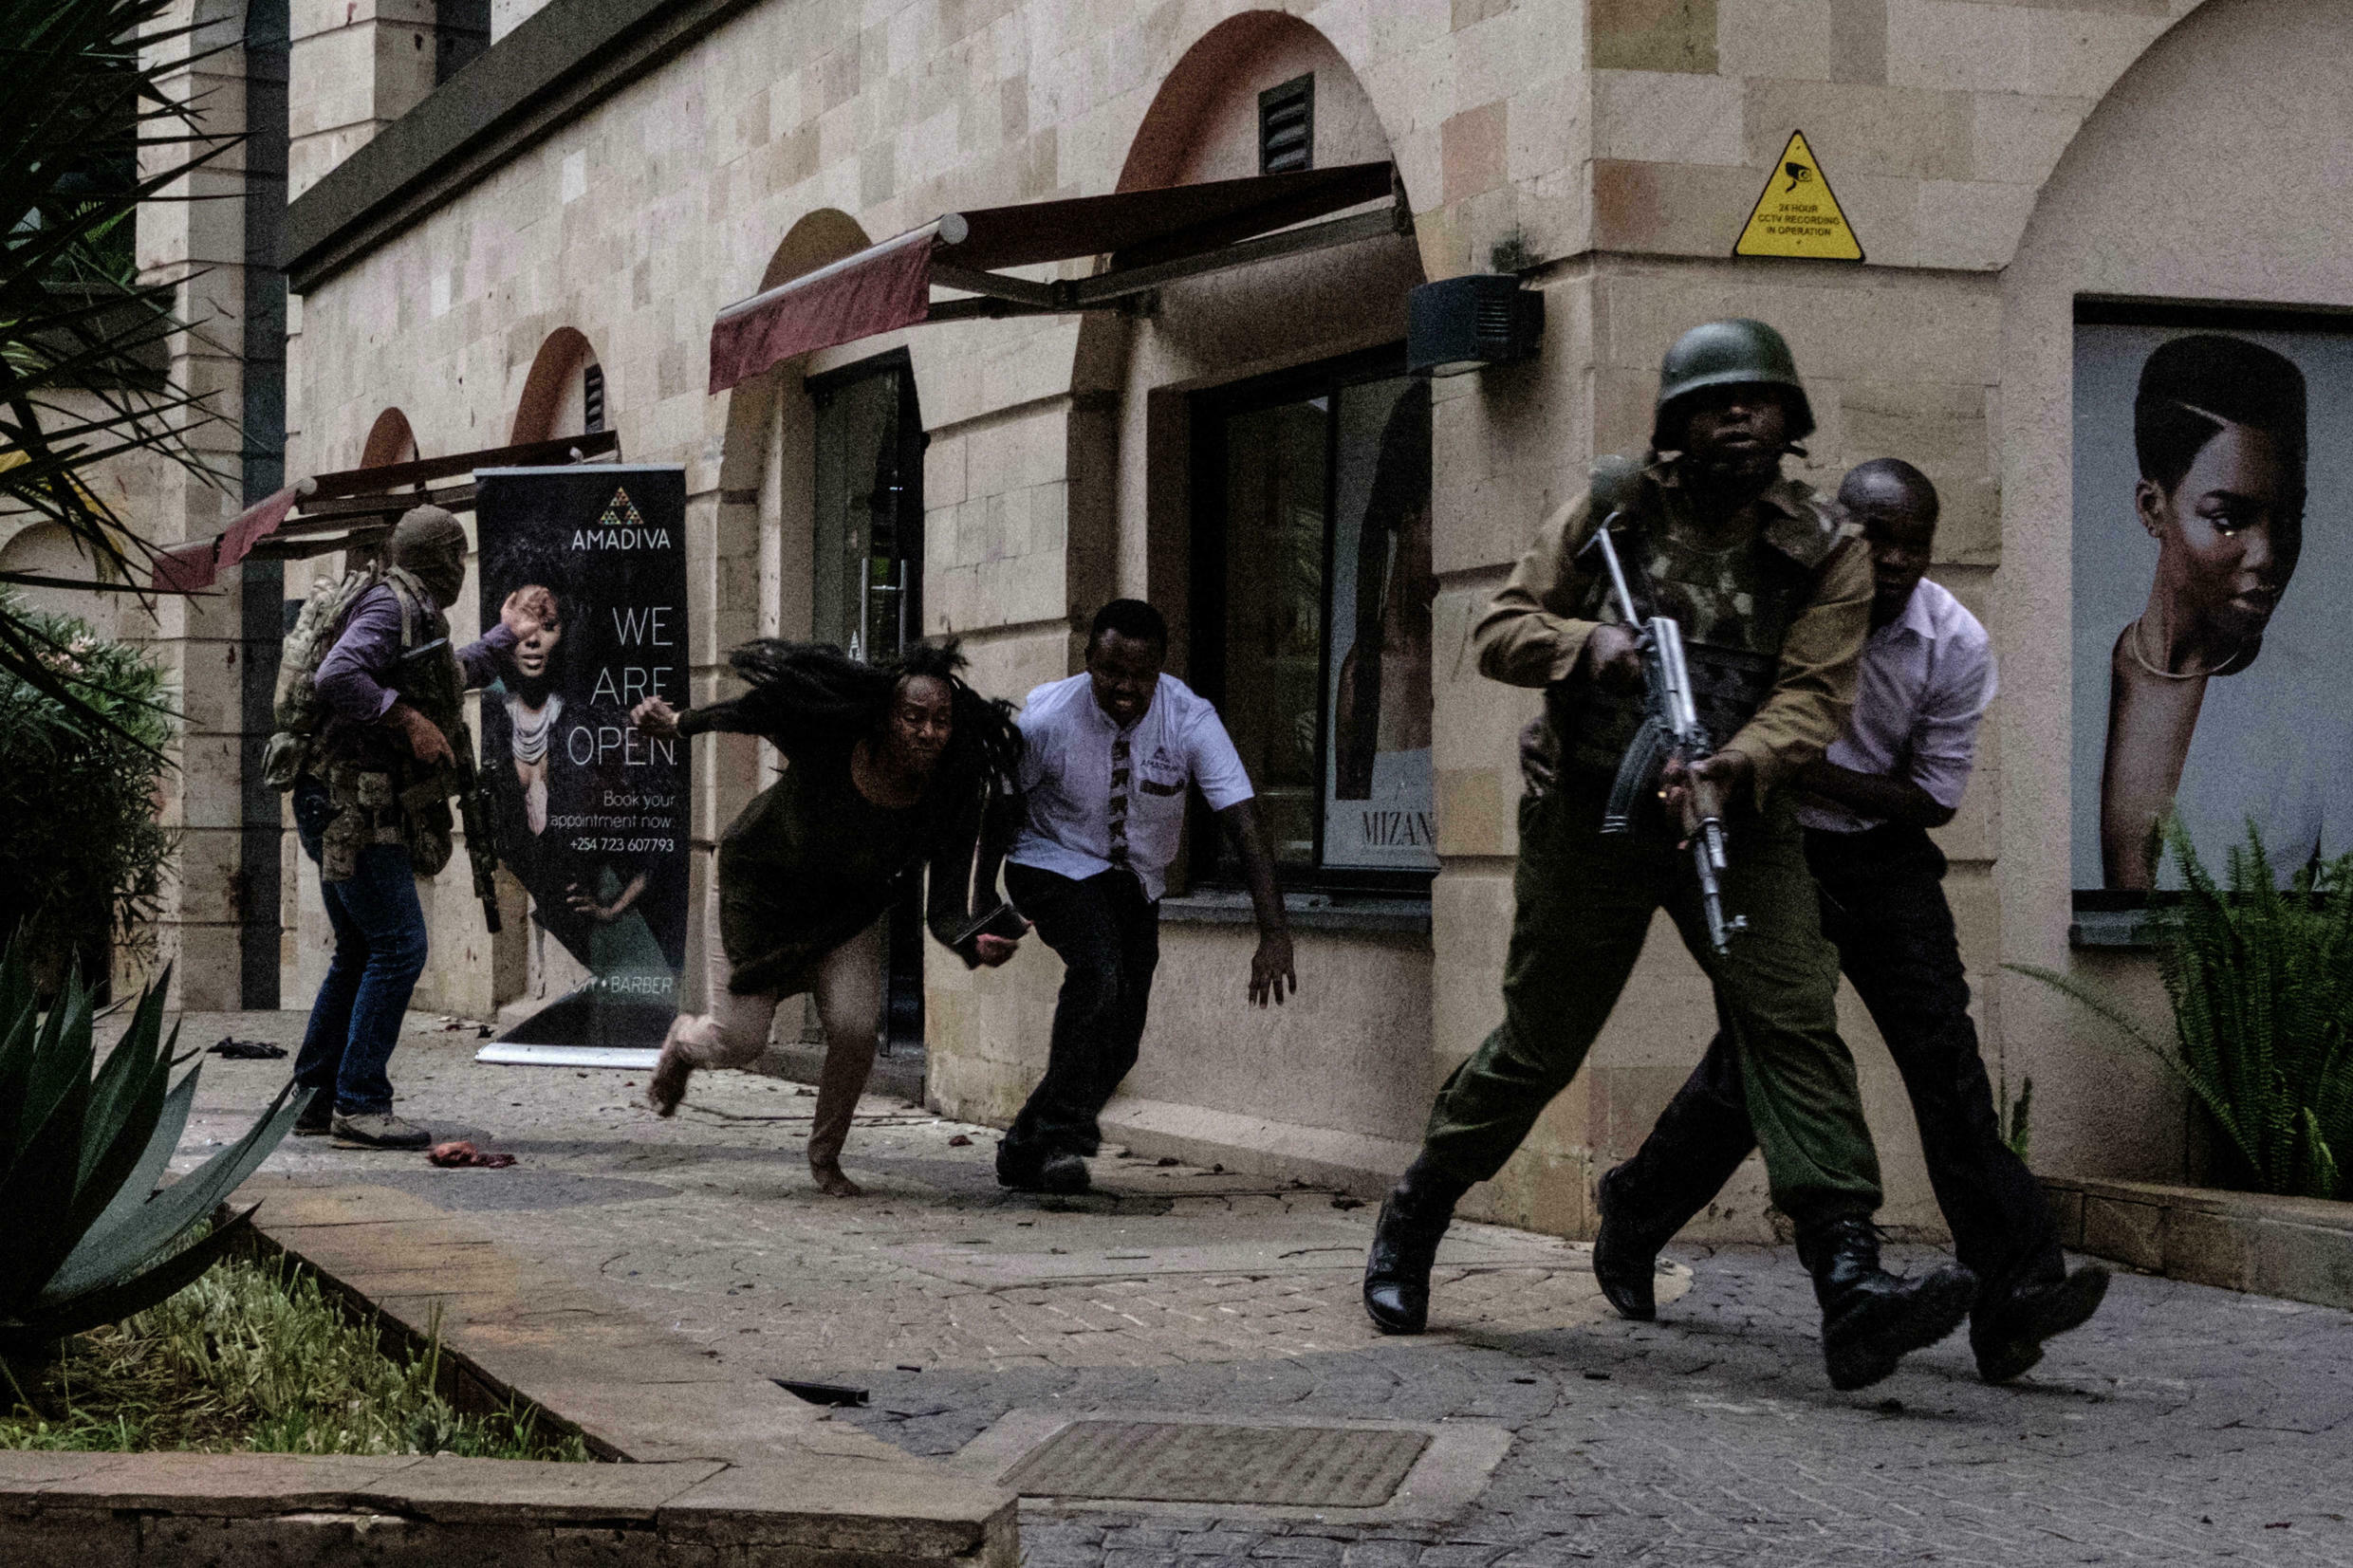 Kenyan security forces help people to escape after bomb blast at dusitD2 hotel in Nairobi on 15 January 2019.